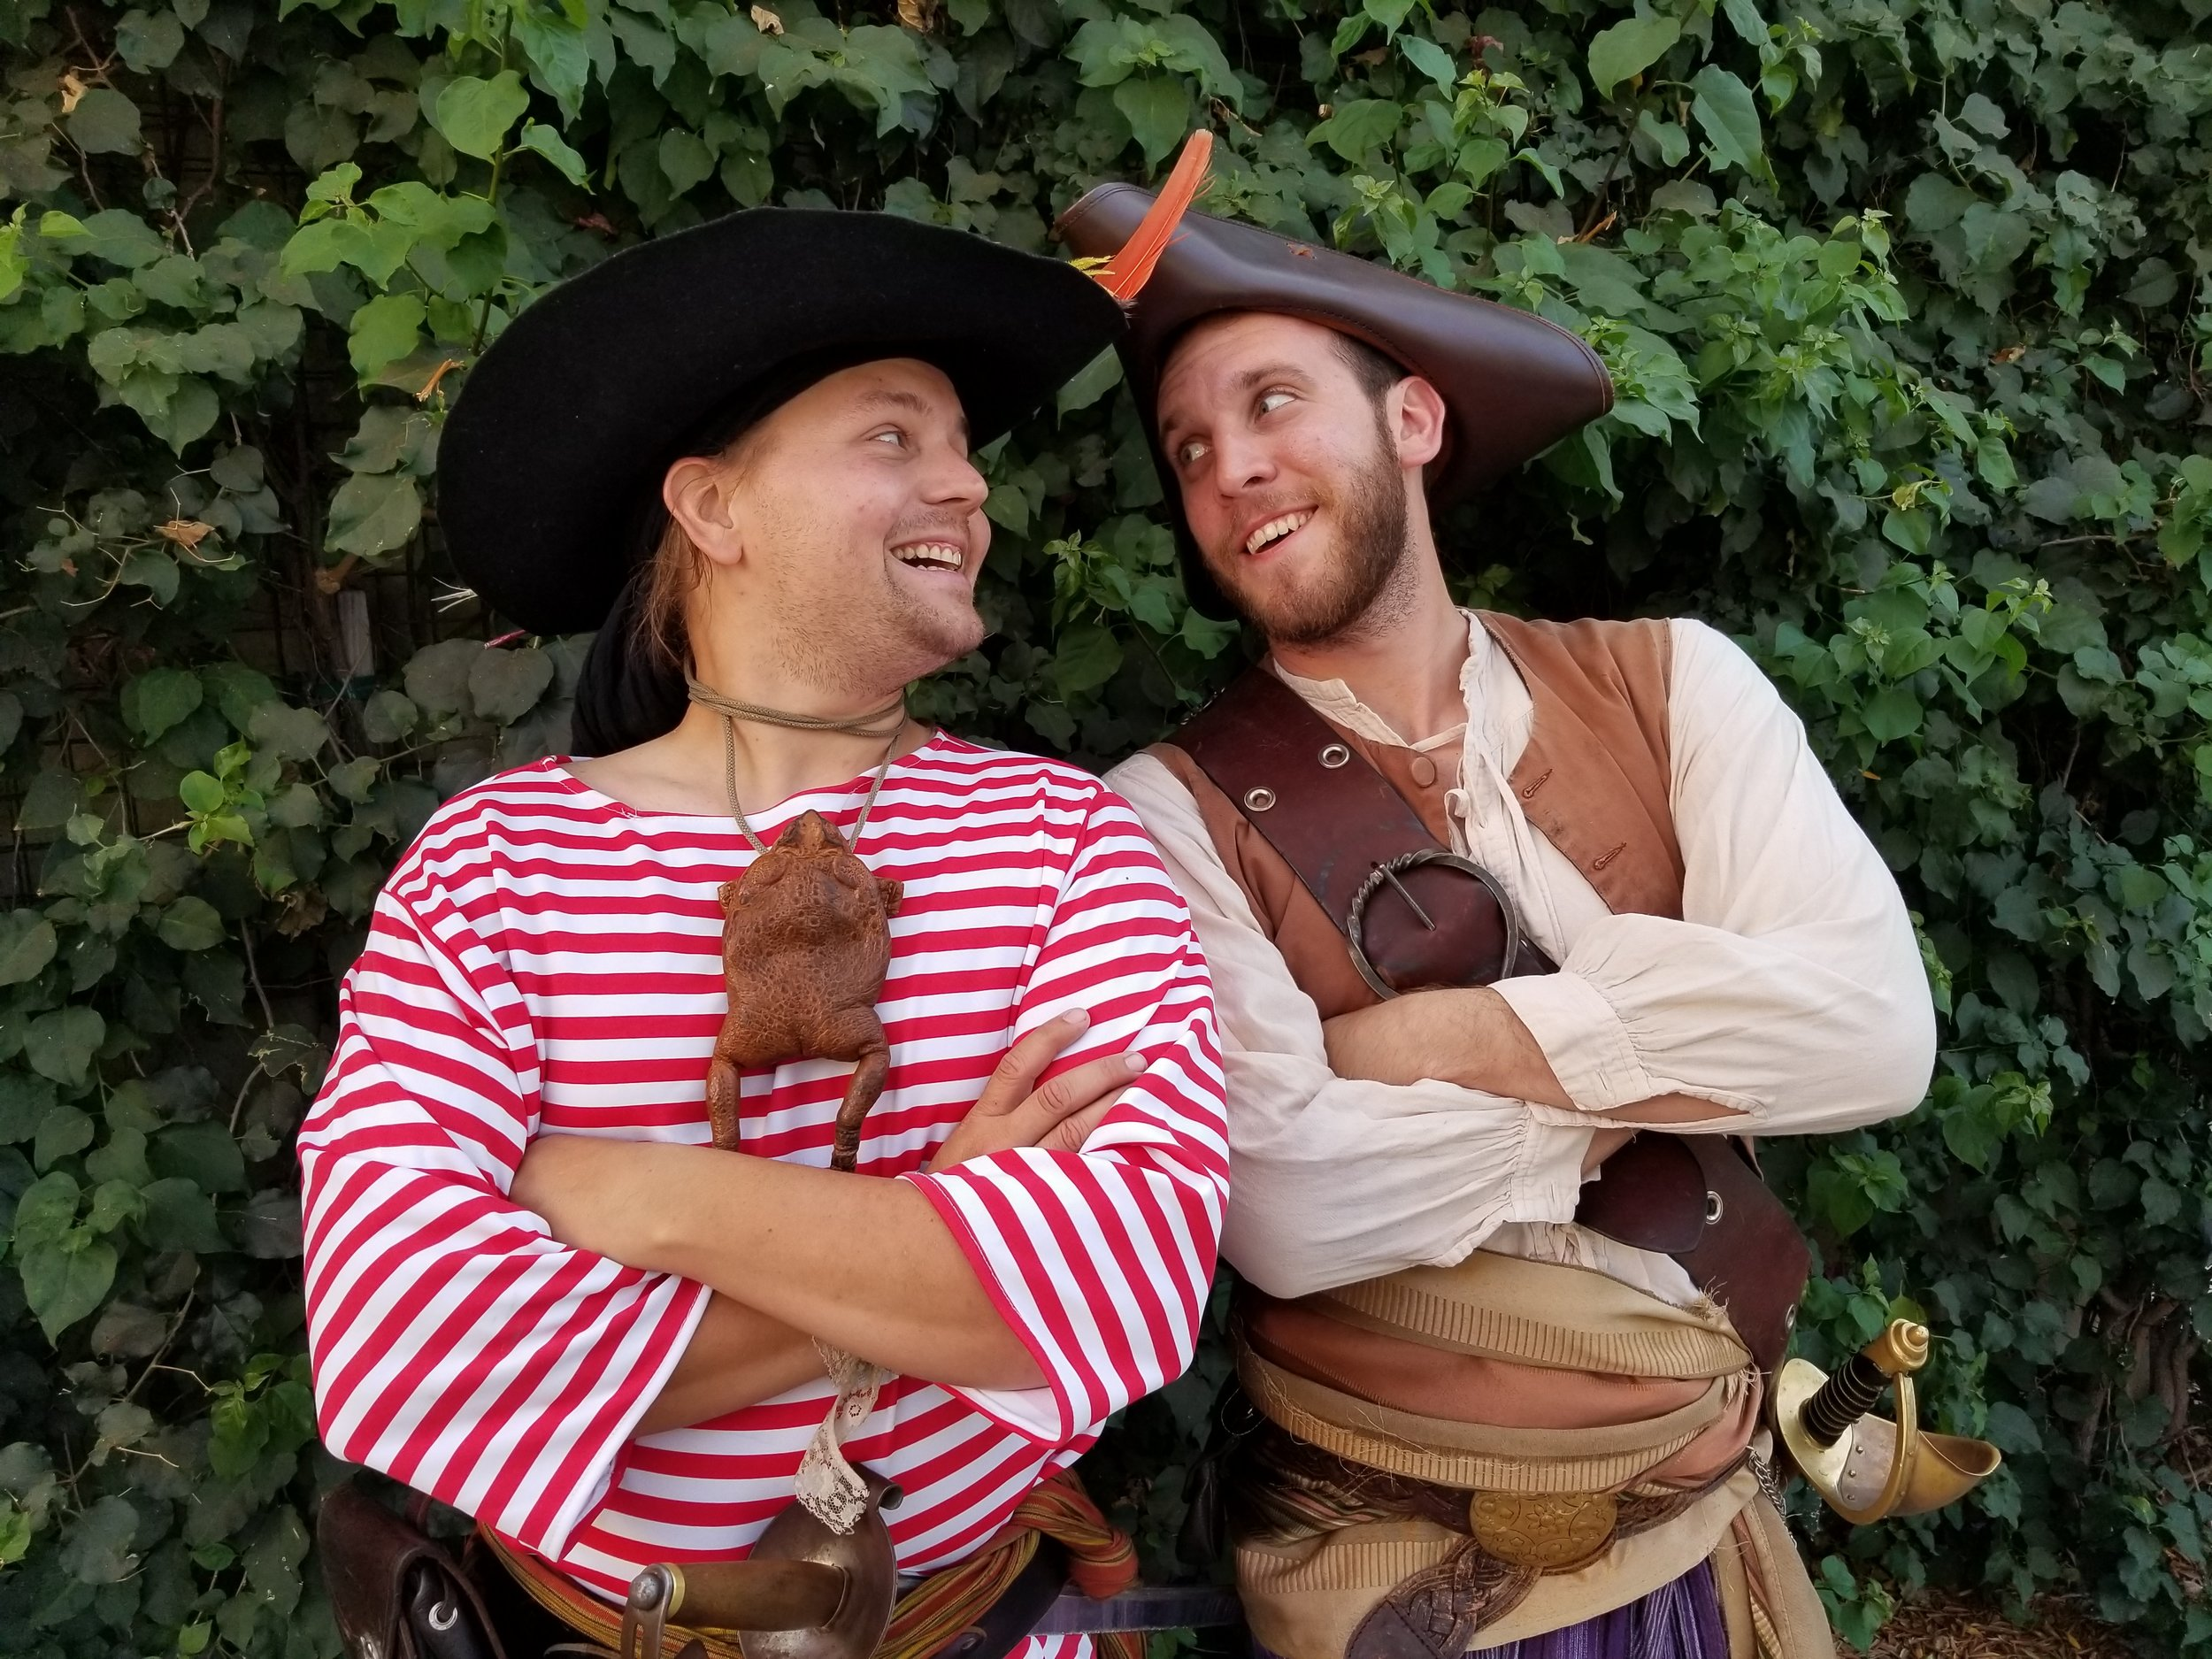 Double the pirate, double the fun! With two pirates we can present a full sword fighting show!